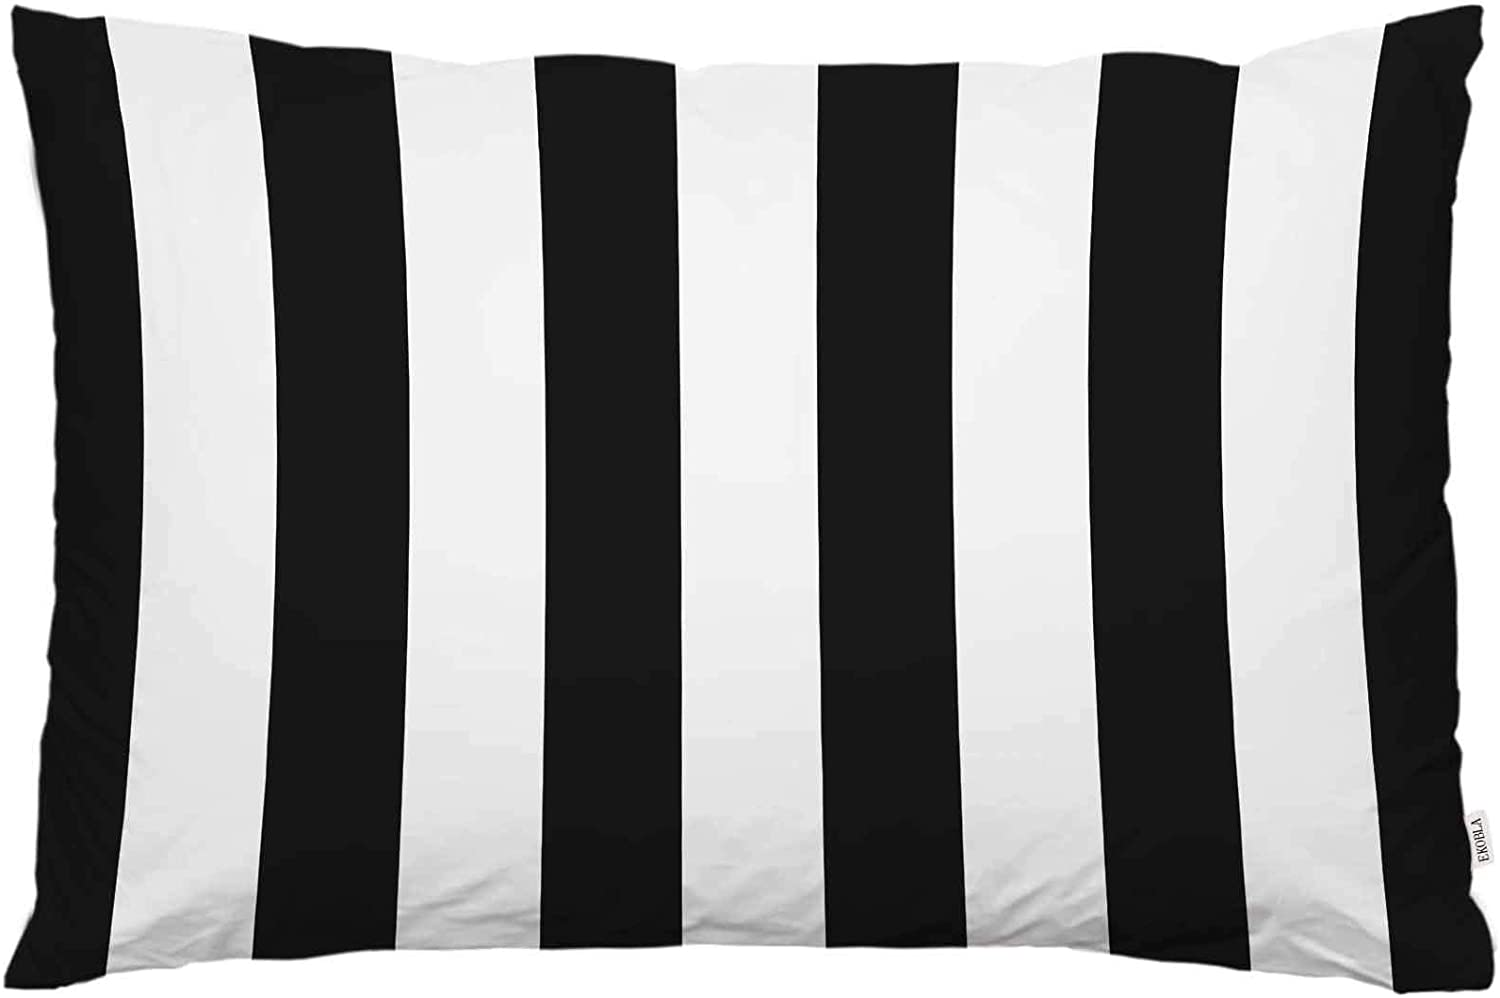 EKOBLA Throw Pillow Cover Black White Stripes Geometric Design Stripe Modern Simple Life Monochrome Style Decor Lumbar Pillow Case Cushion for Sofa Couch Bed Standard Queen Size 20x30 Inch